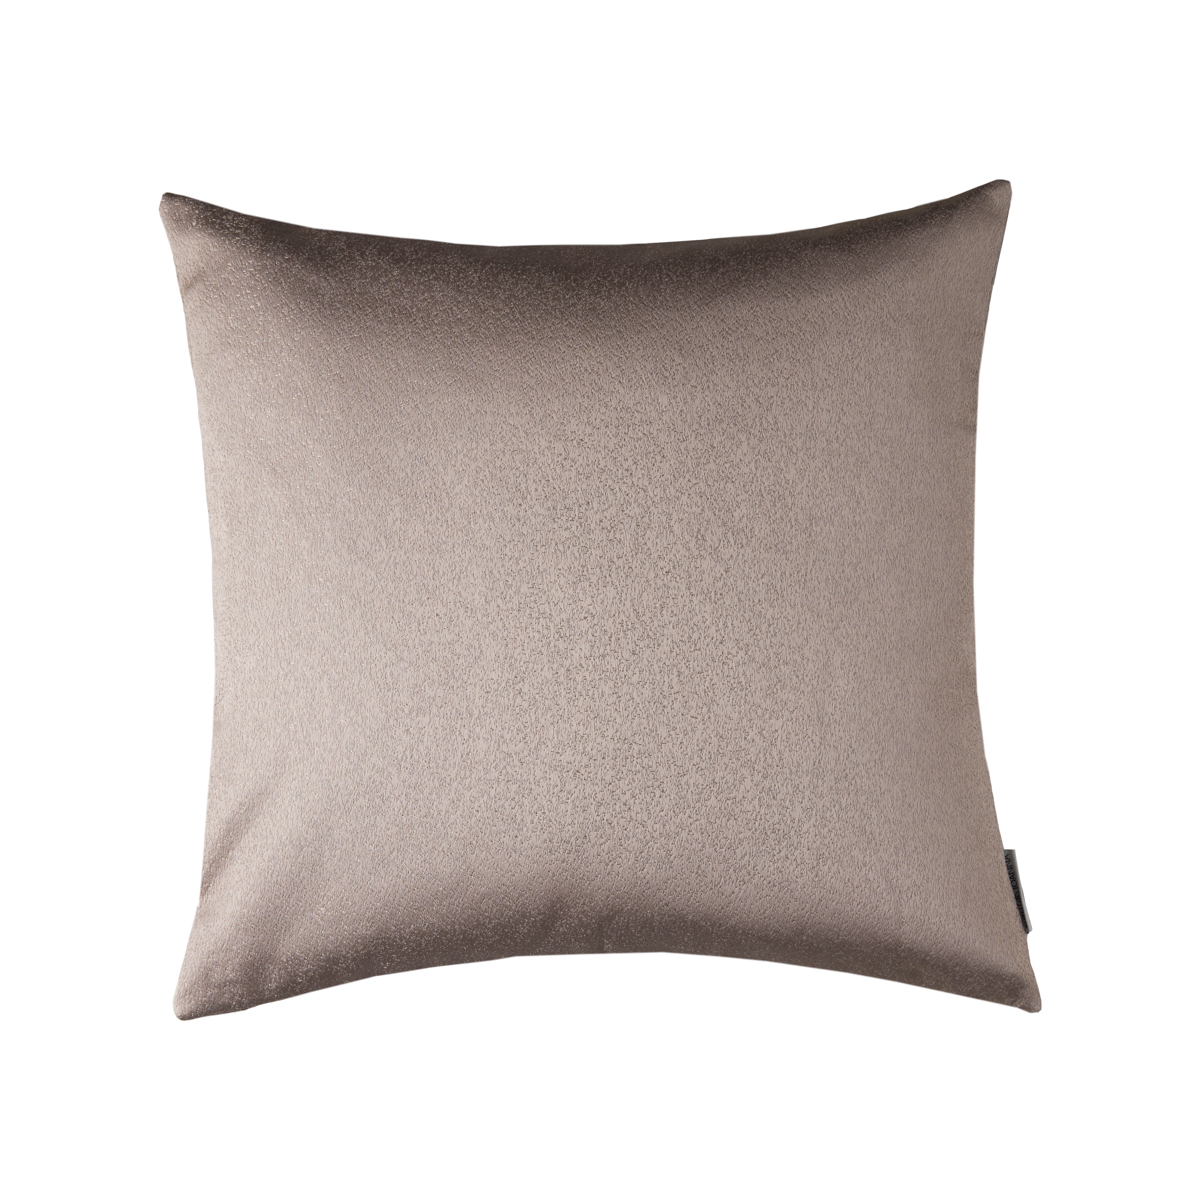 Dusty Silk Pillow